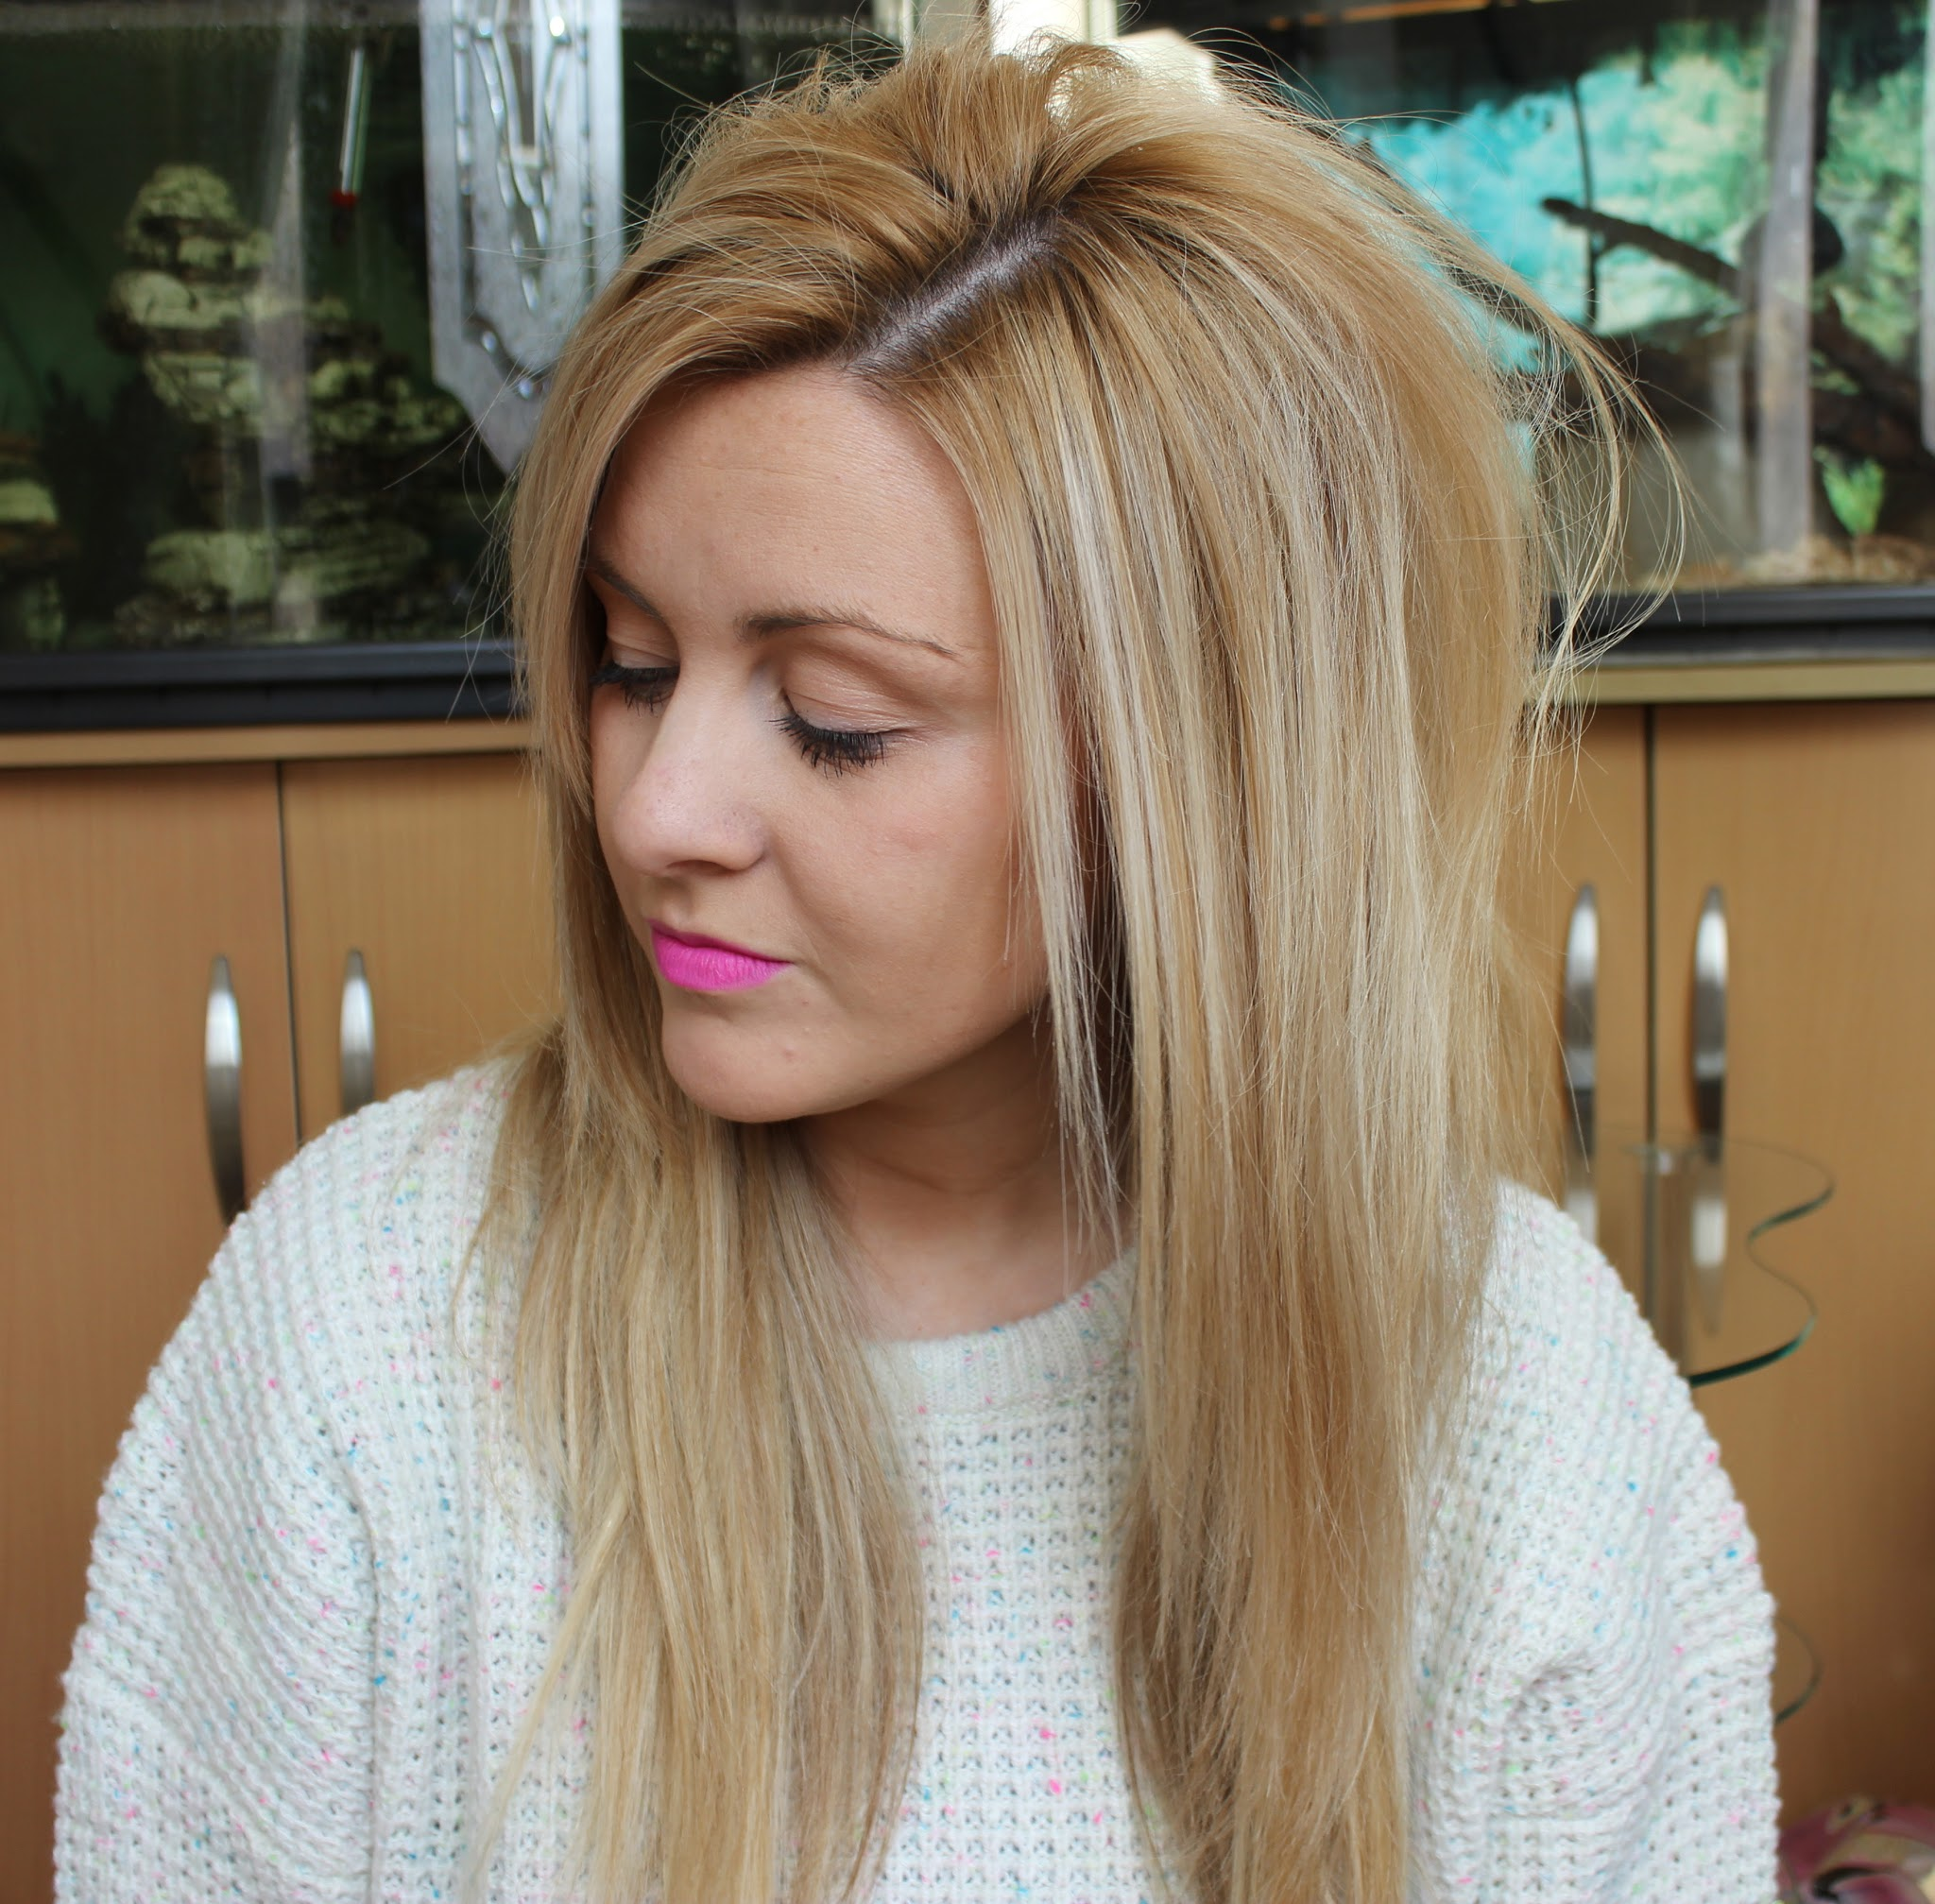 My Favourite Hairstyles using Backcombing - Boutiko.co.uk